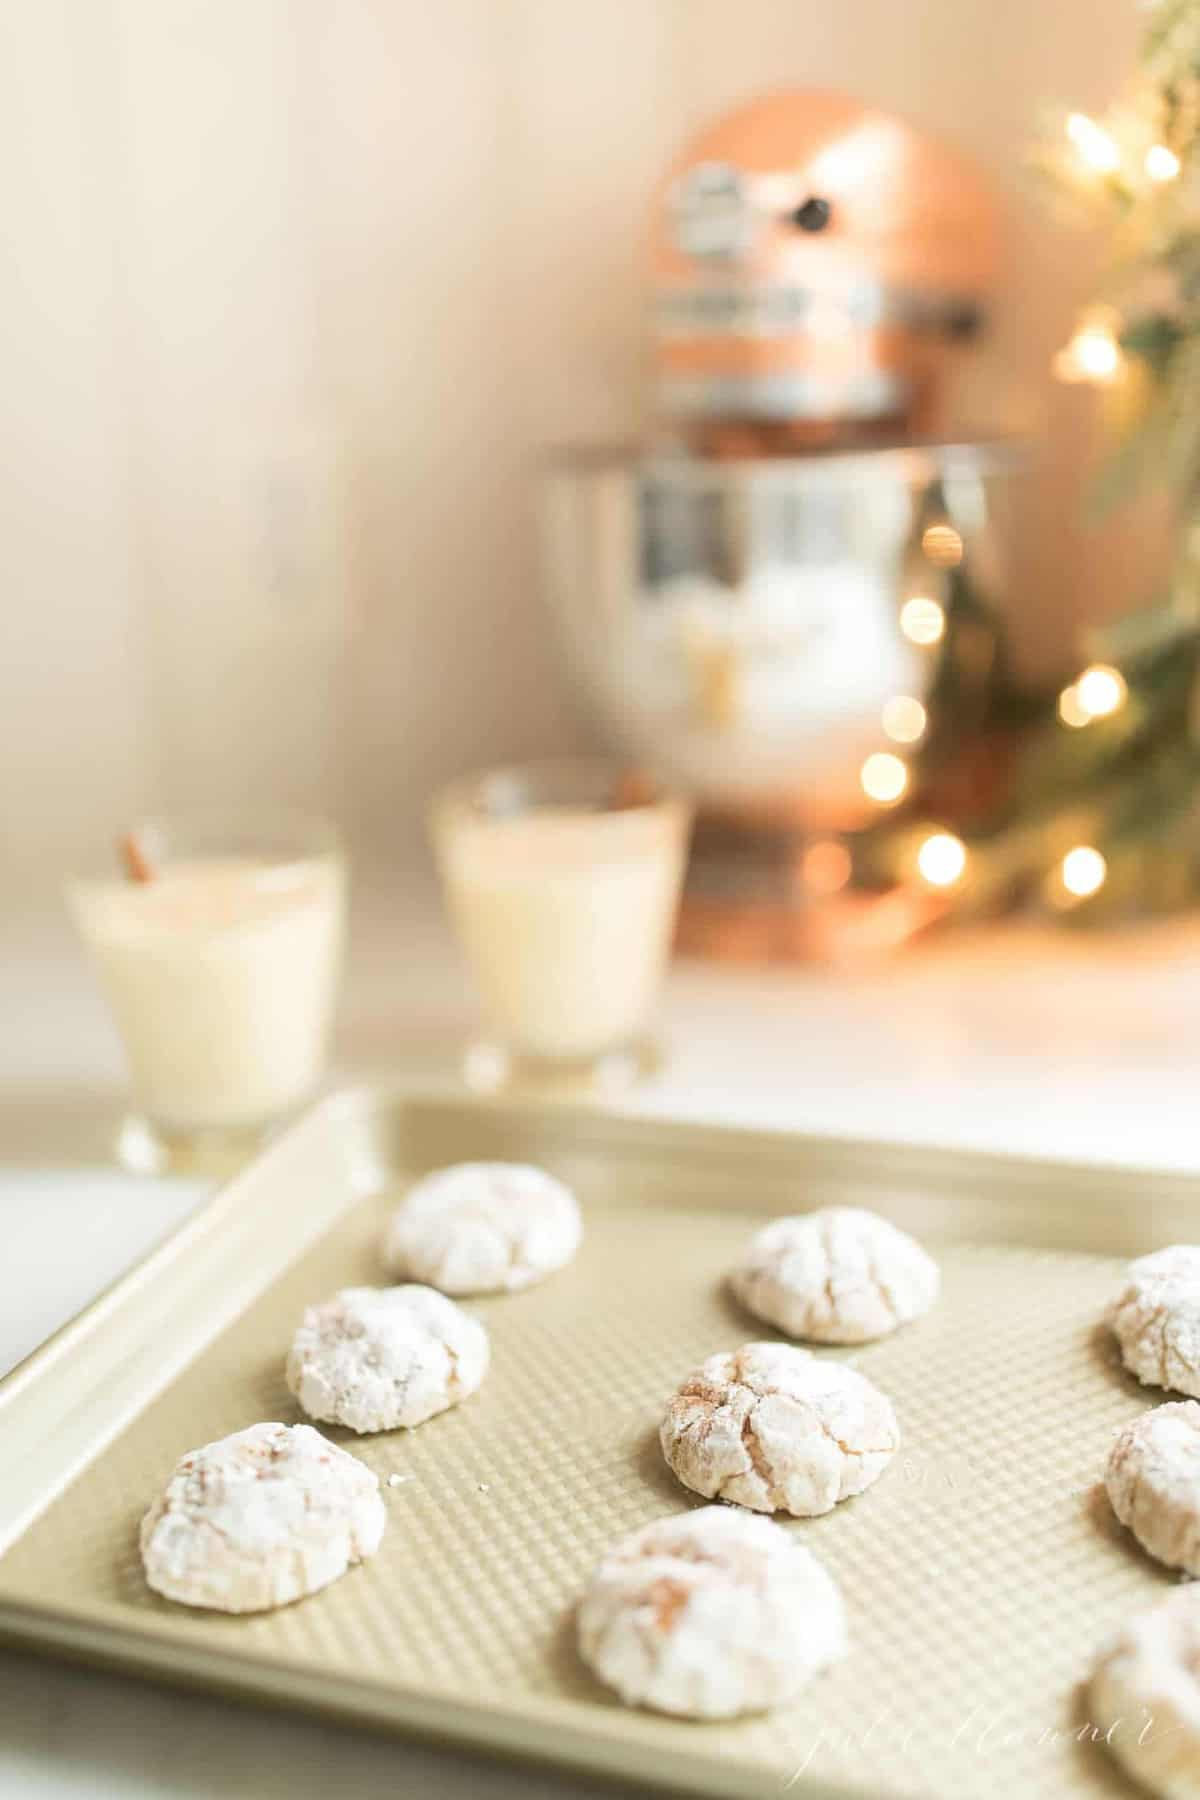 eggnog cookies covered in powdered sugar on baking sheet next to two cups of eggnog a mixer and prelit garland